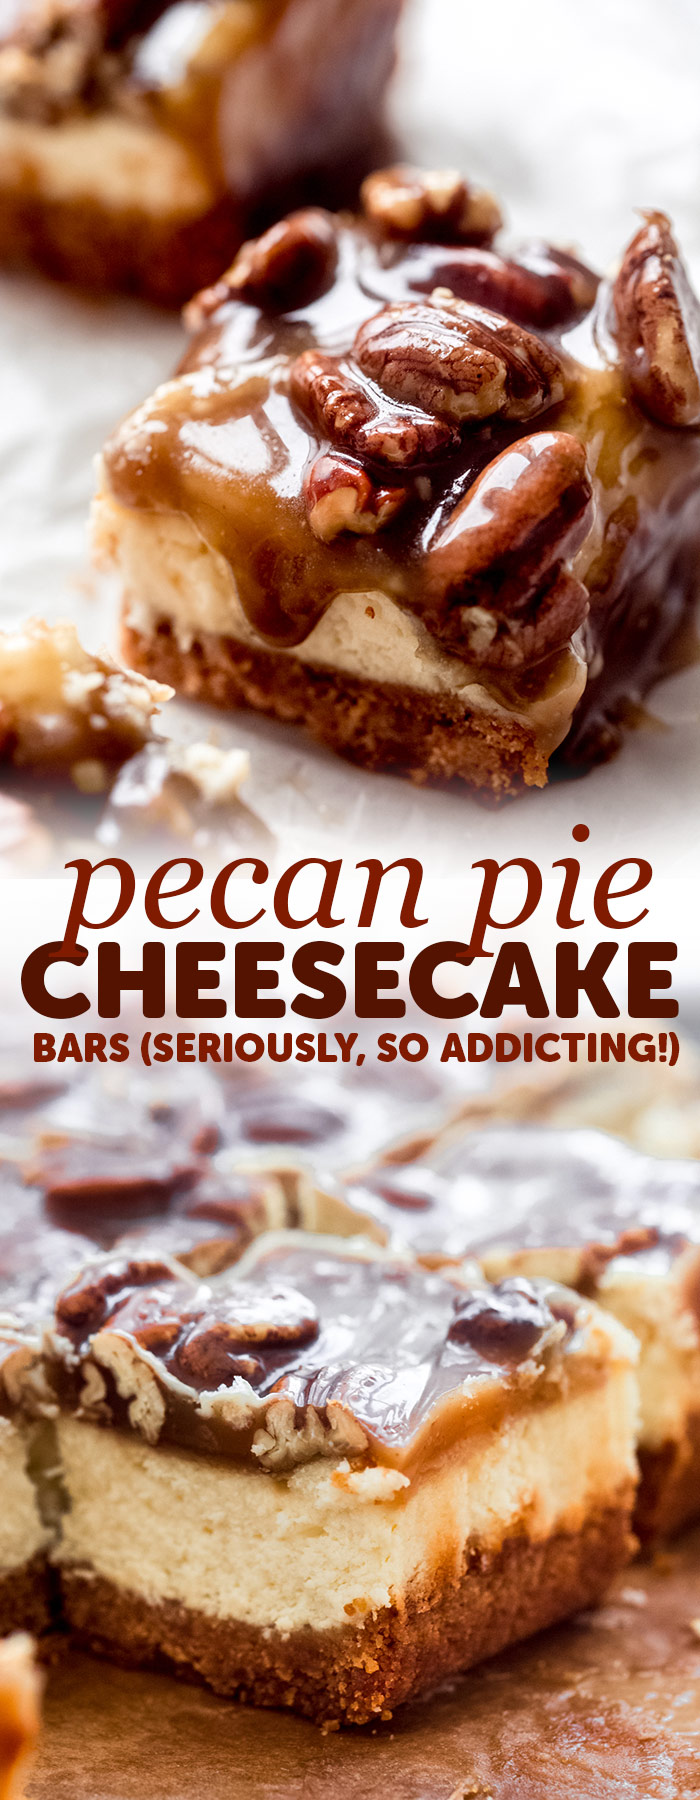 Pecan Pie Cheesecake Bars - Learn how to make the best cheesecake bars topped with pecan pie topping! These bars are absolutely addicting! #cheesecakebars #cheesecake #pecanpiebars #pecanpiecheesecakebar #christmas #thanksgiving #dessert | Littlespicejar.com